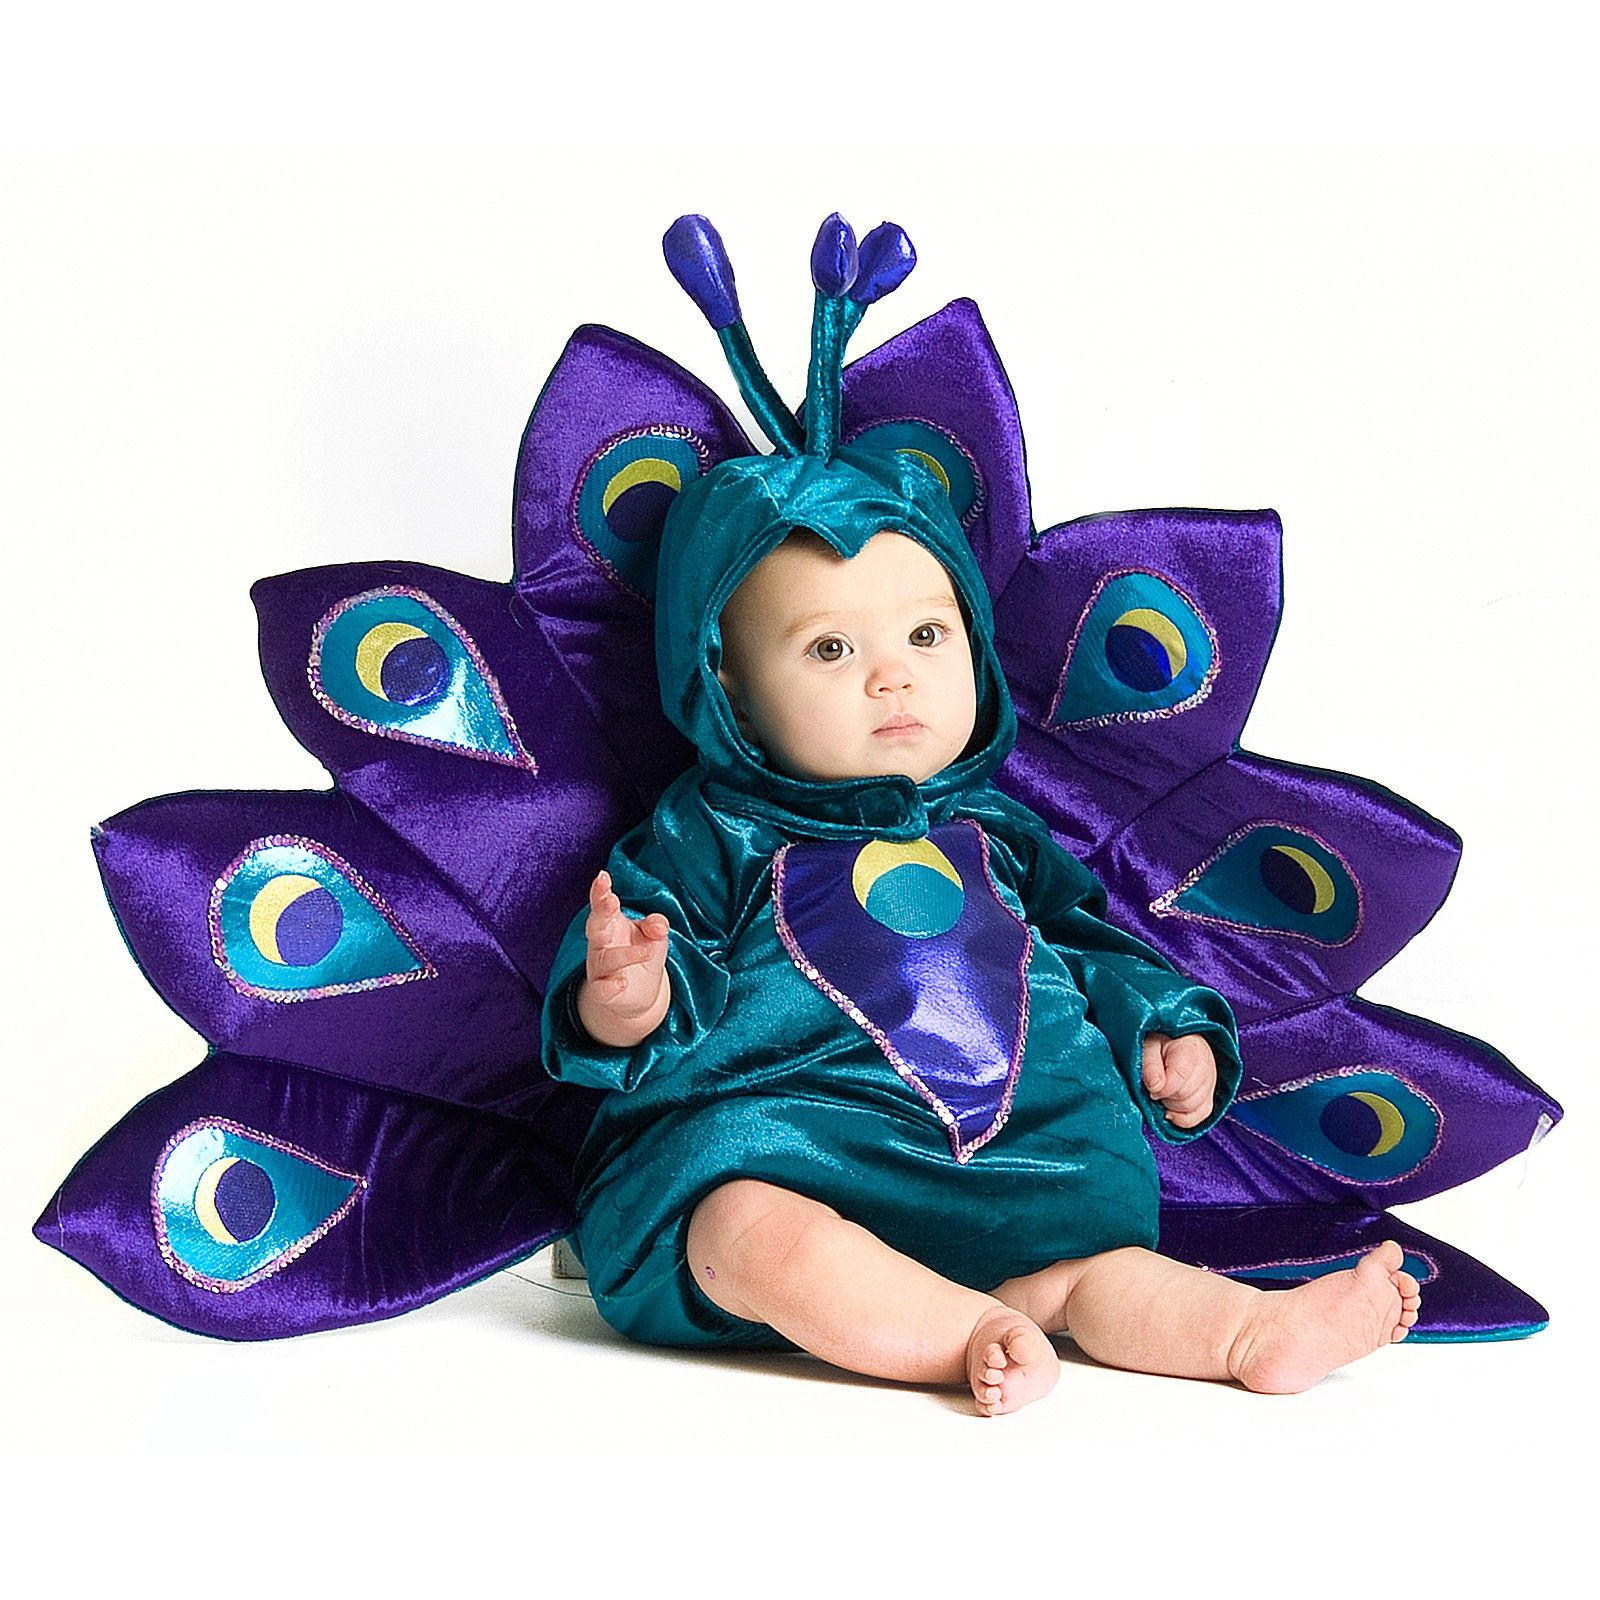 Baby Peacock Infant / Toddler Costume | Peacock, Toddler costumes ...